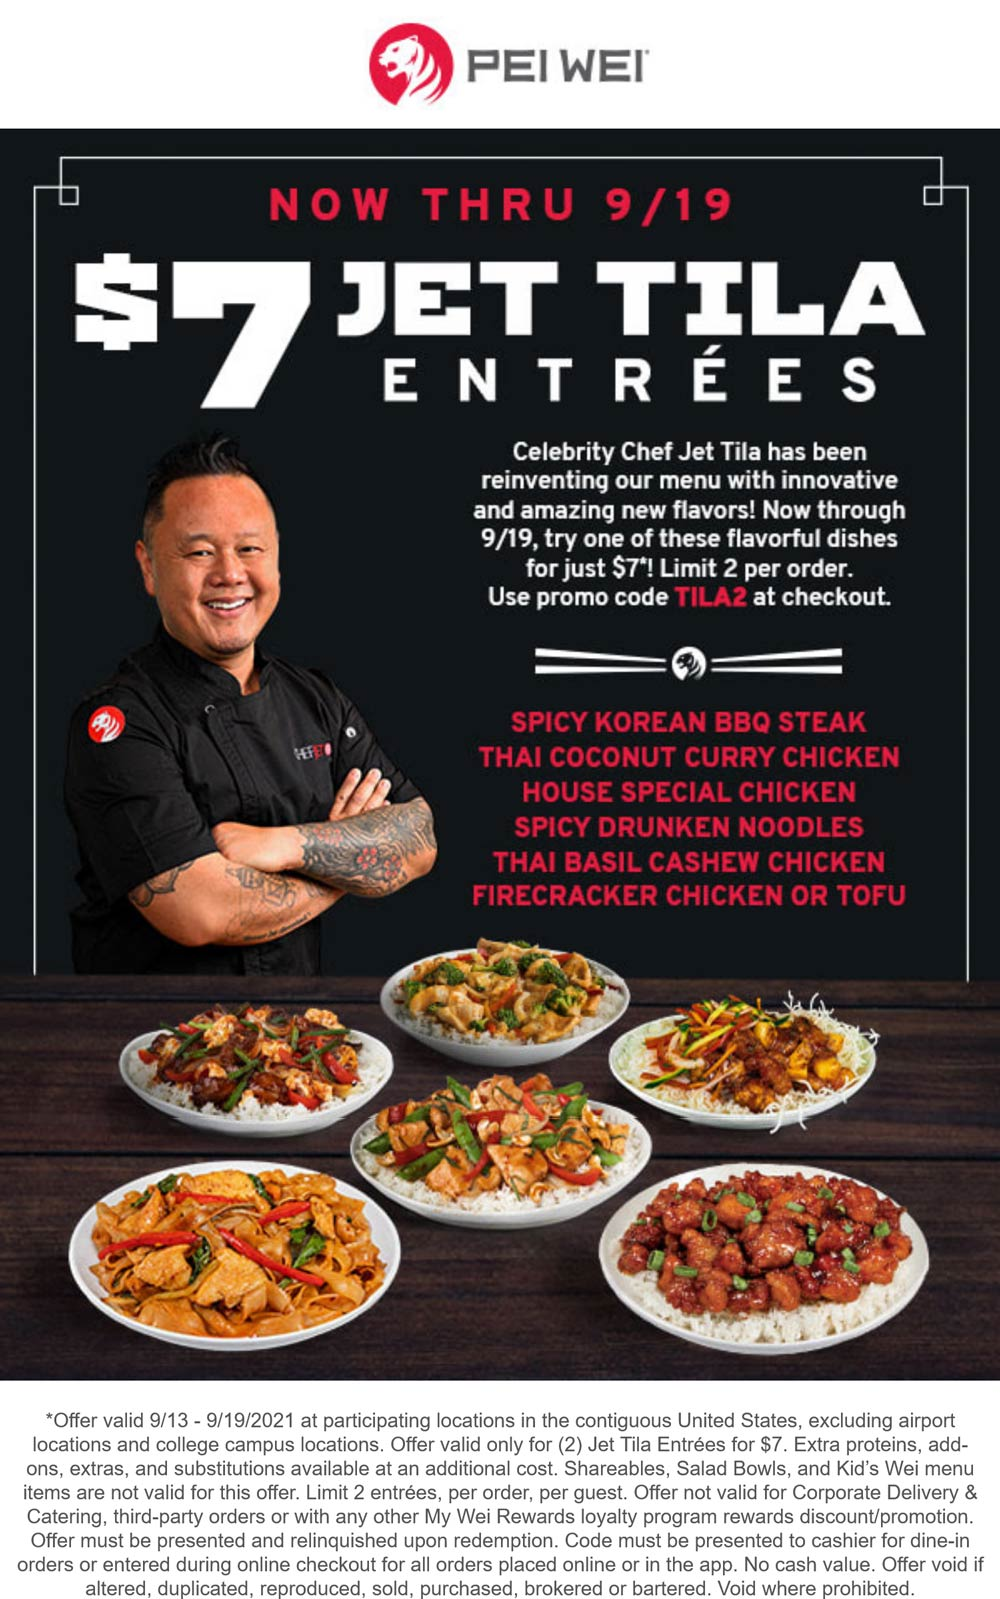 Pei Wei coupons & promo code for [October 2021]